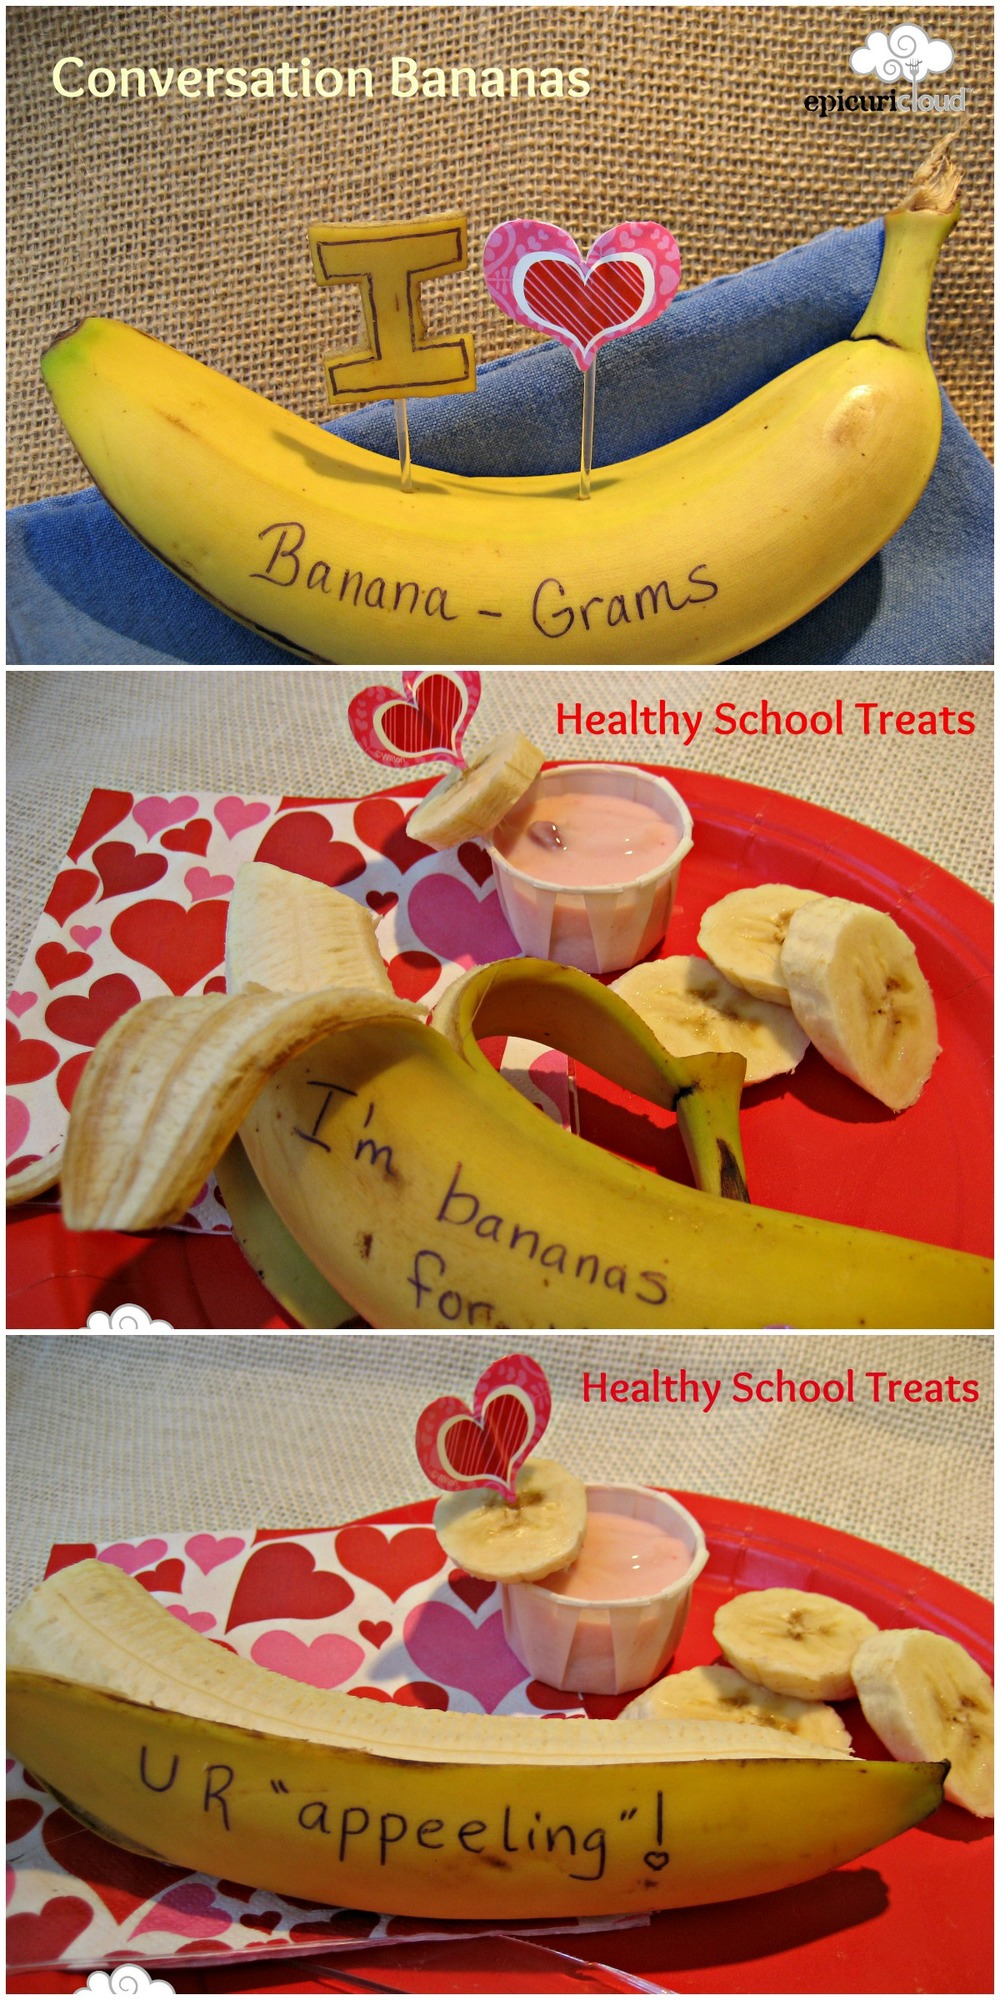 V day bananagram FB photo.jpg